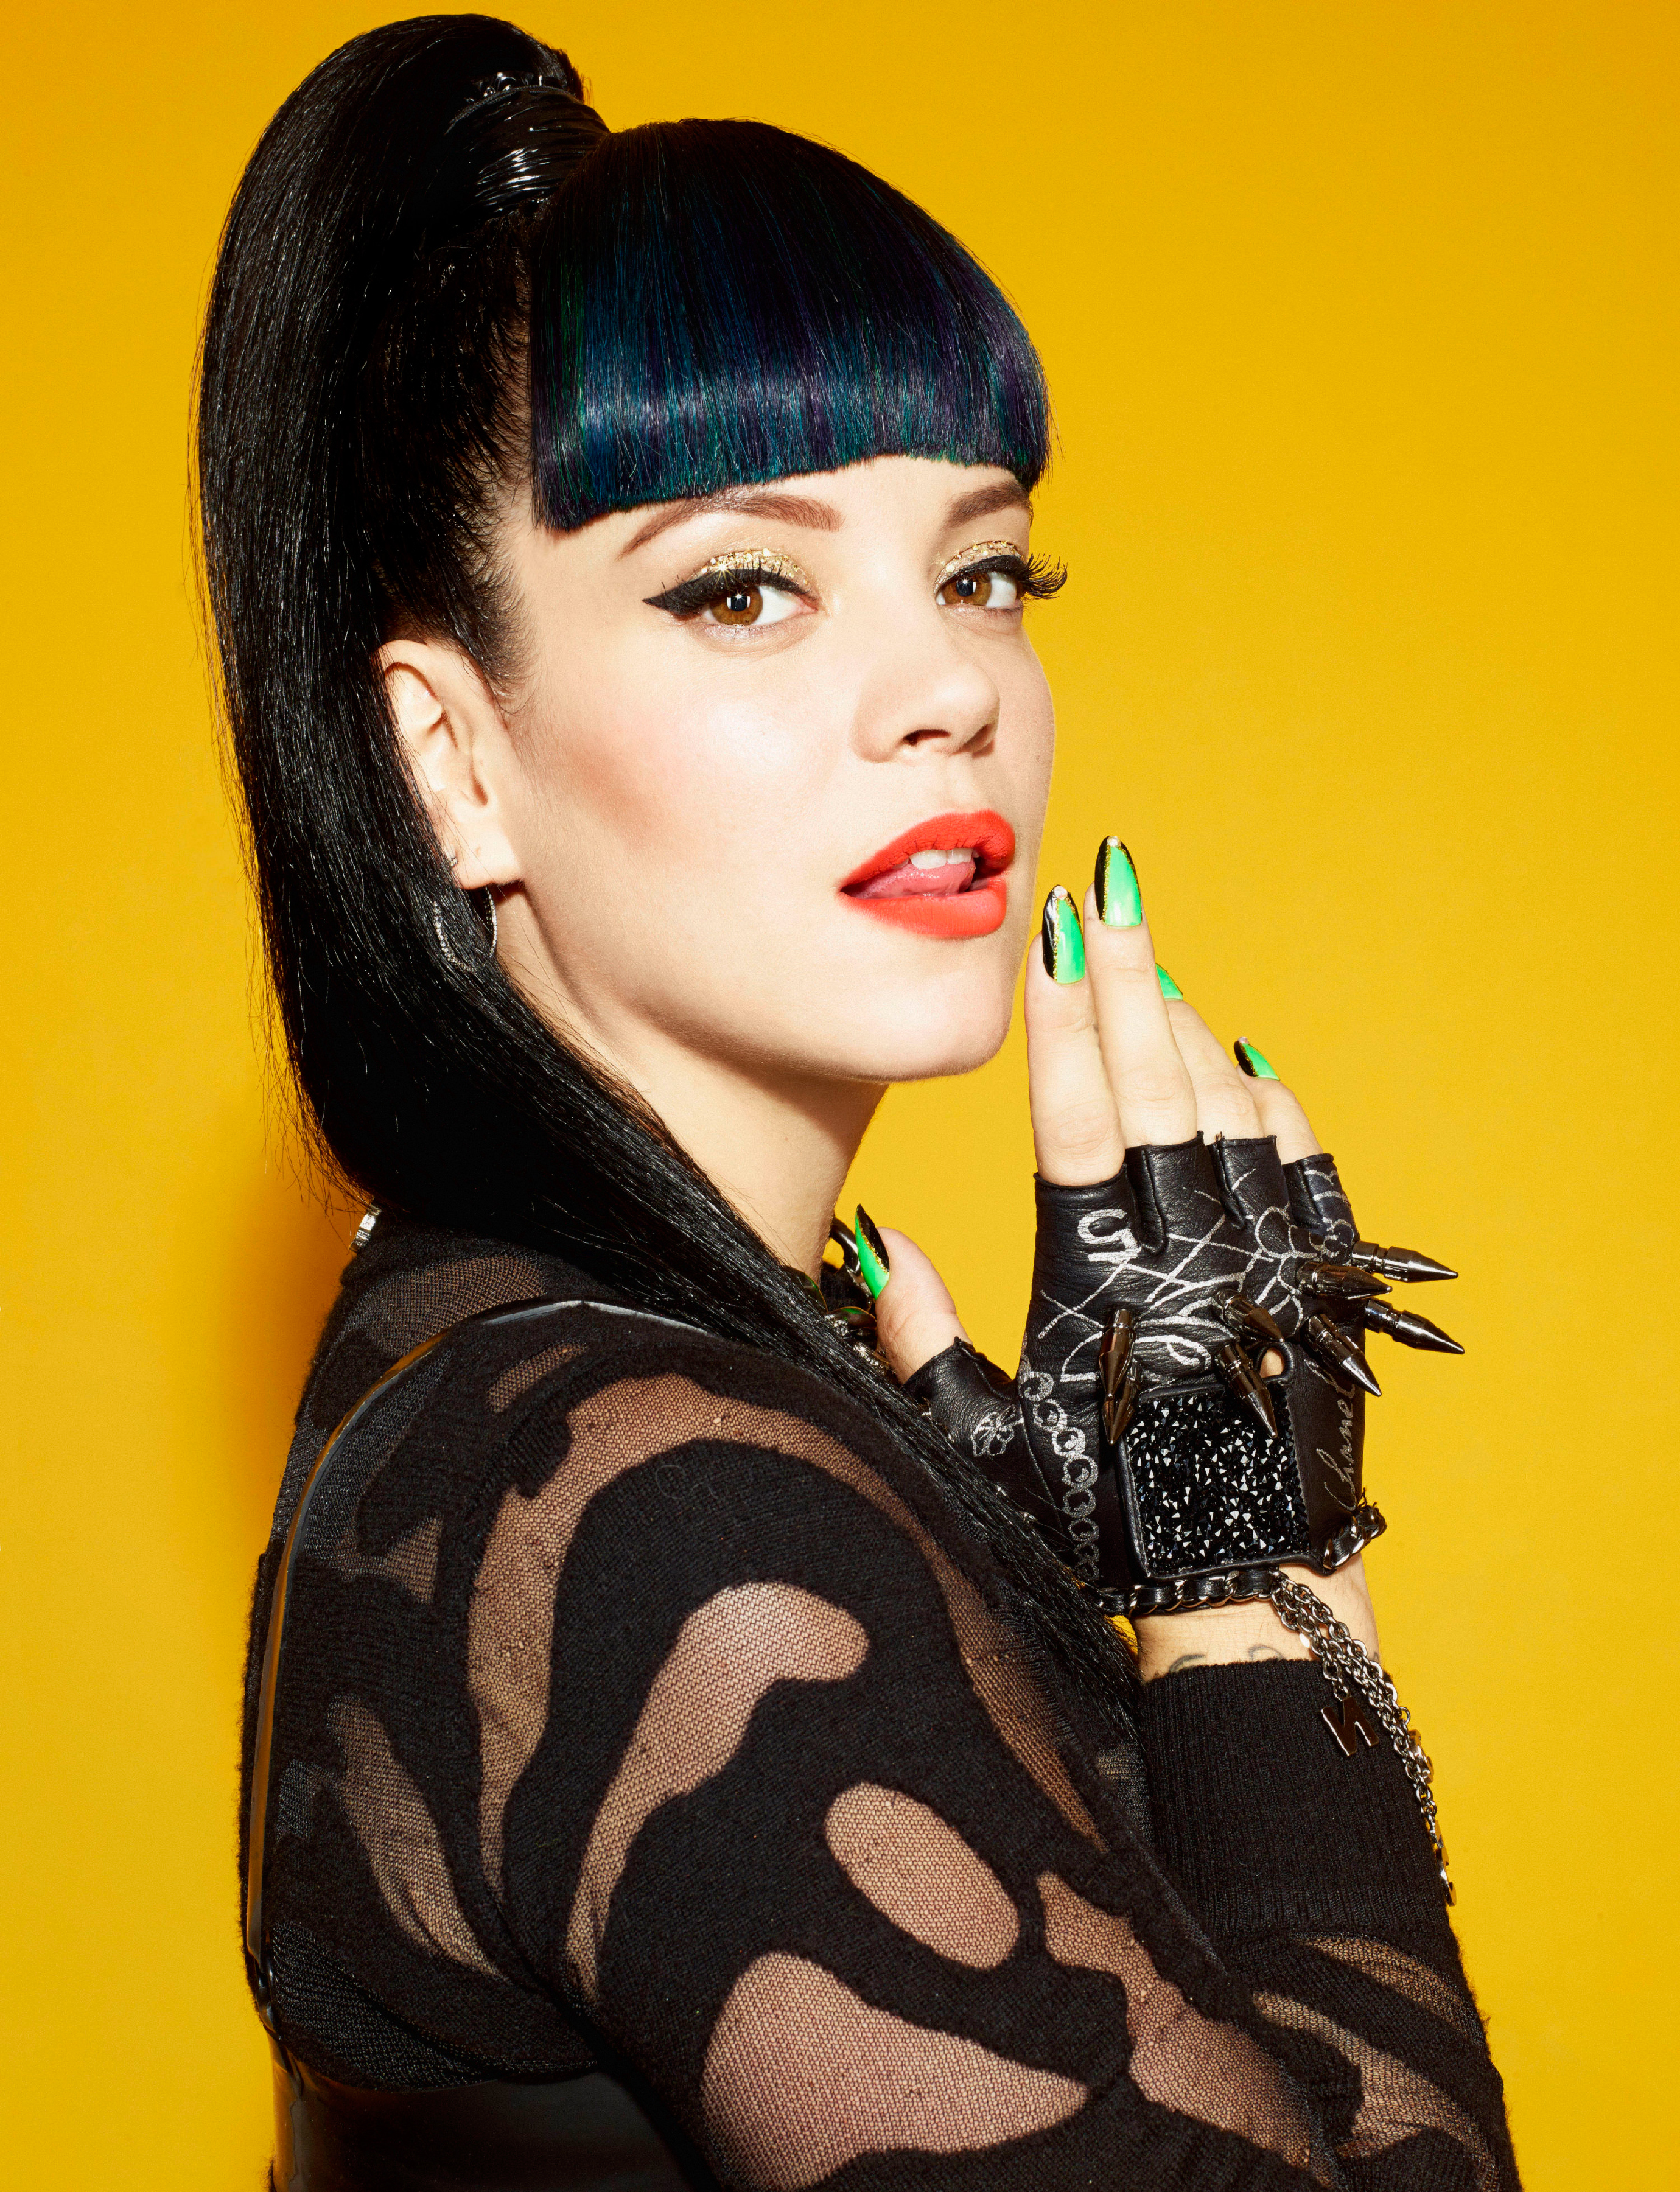 Image result for Lily Allen hot